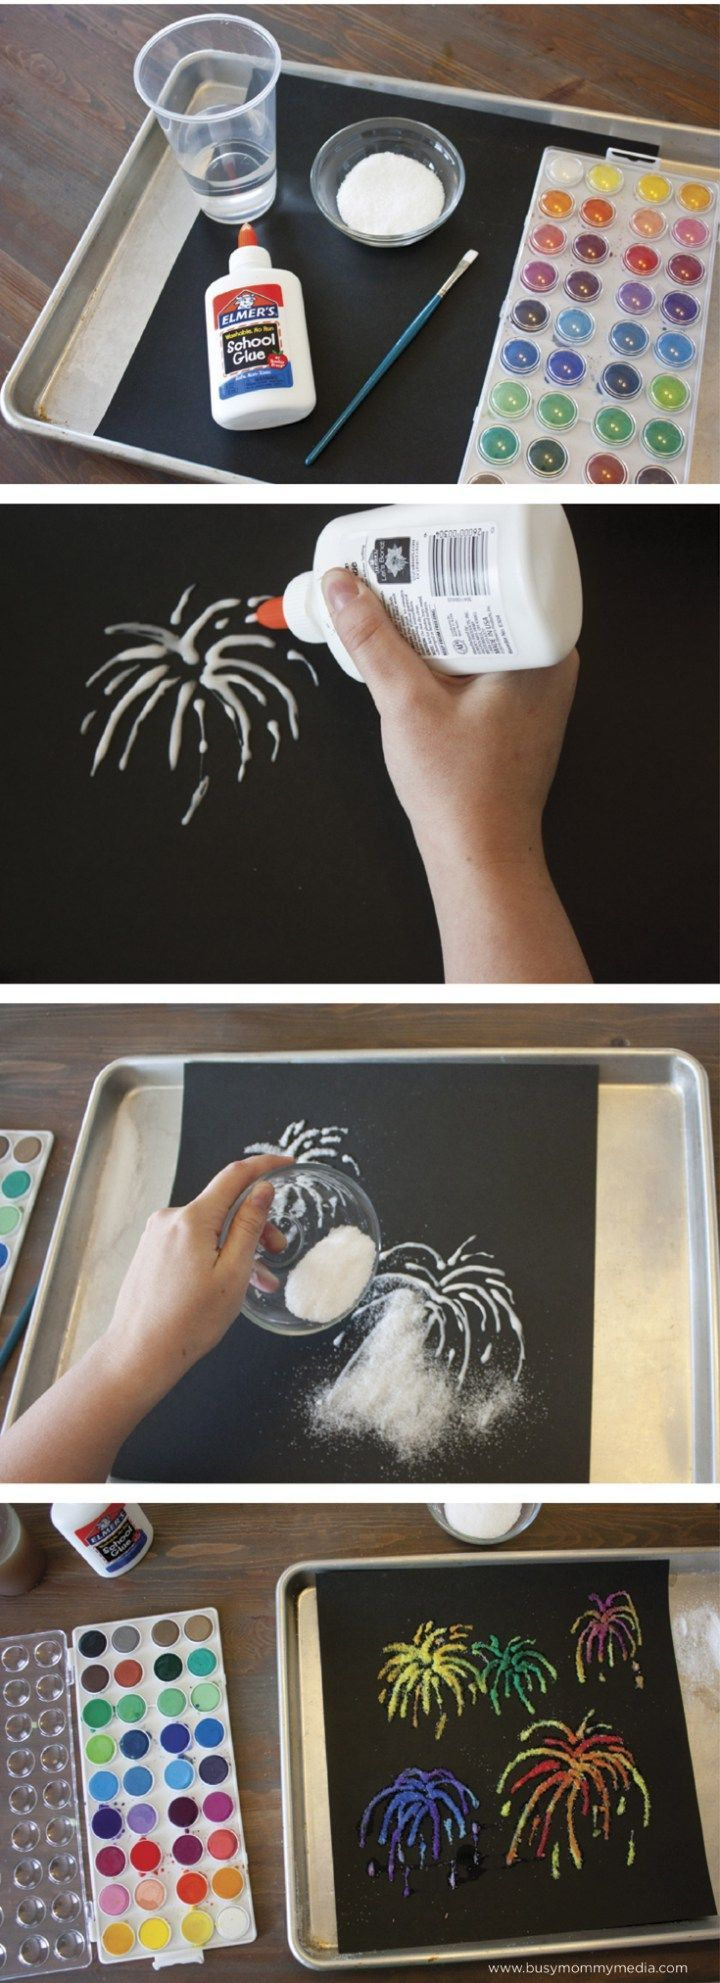 Firework Salt Painting - Busy Mommy Media _ This is such a cool art project for kids! It looks so neat when it is done. I love that it uses stuff I already have on hand. This would be awesome for a rainy day activity!